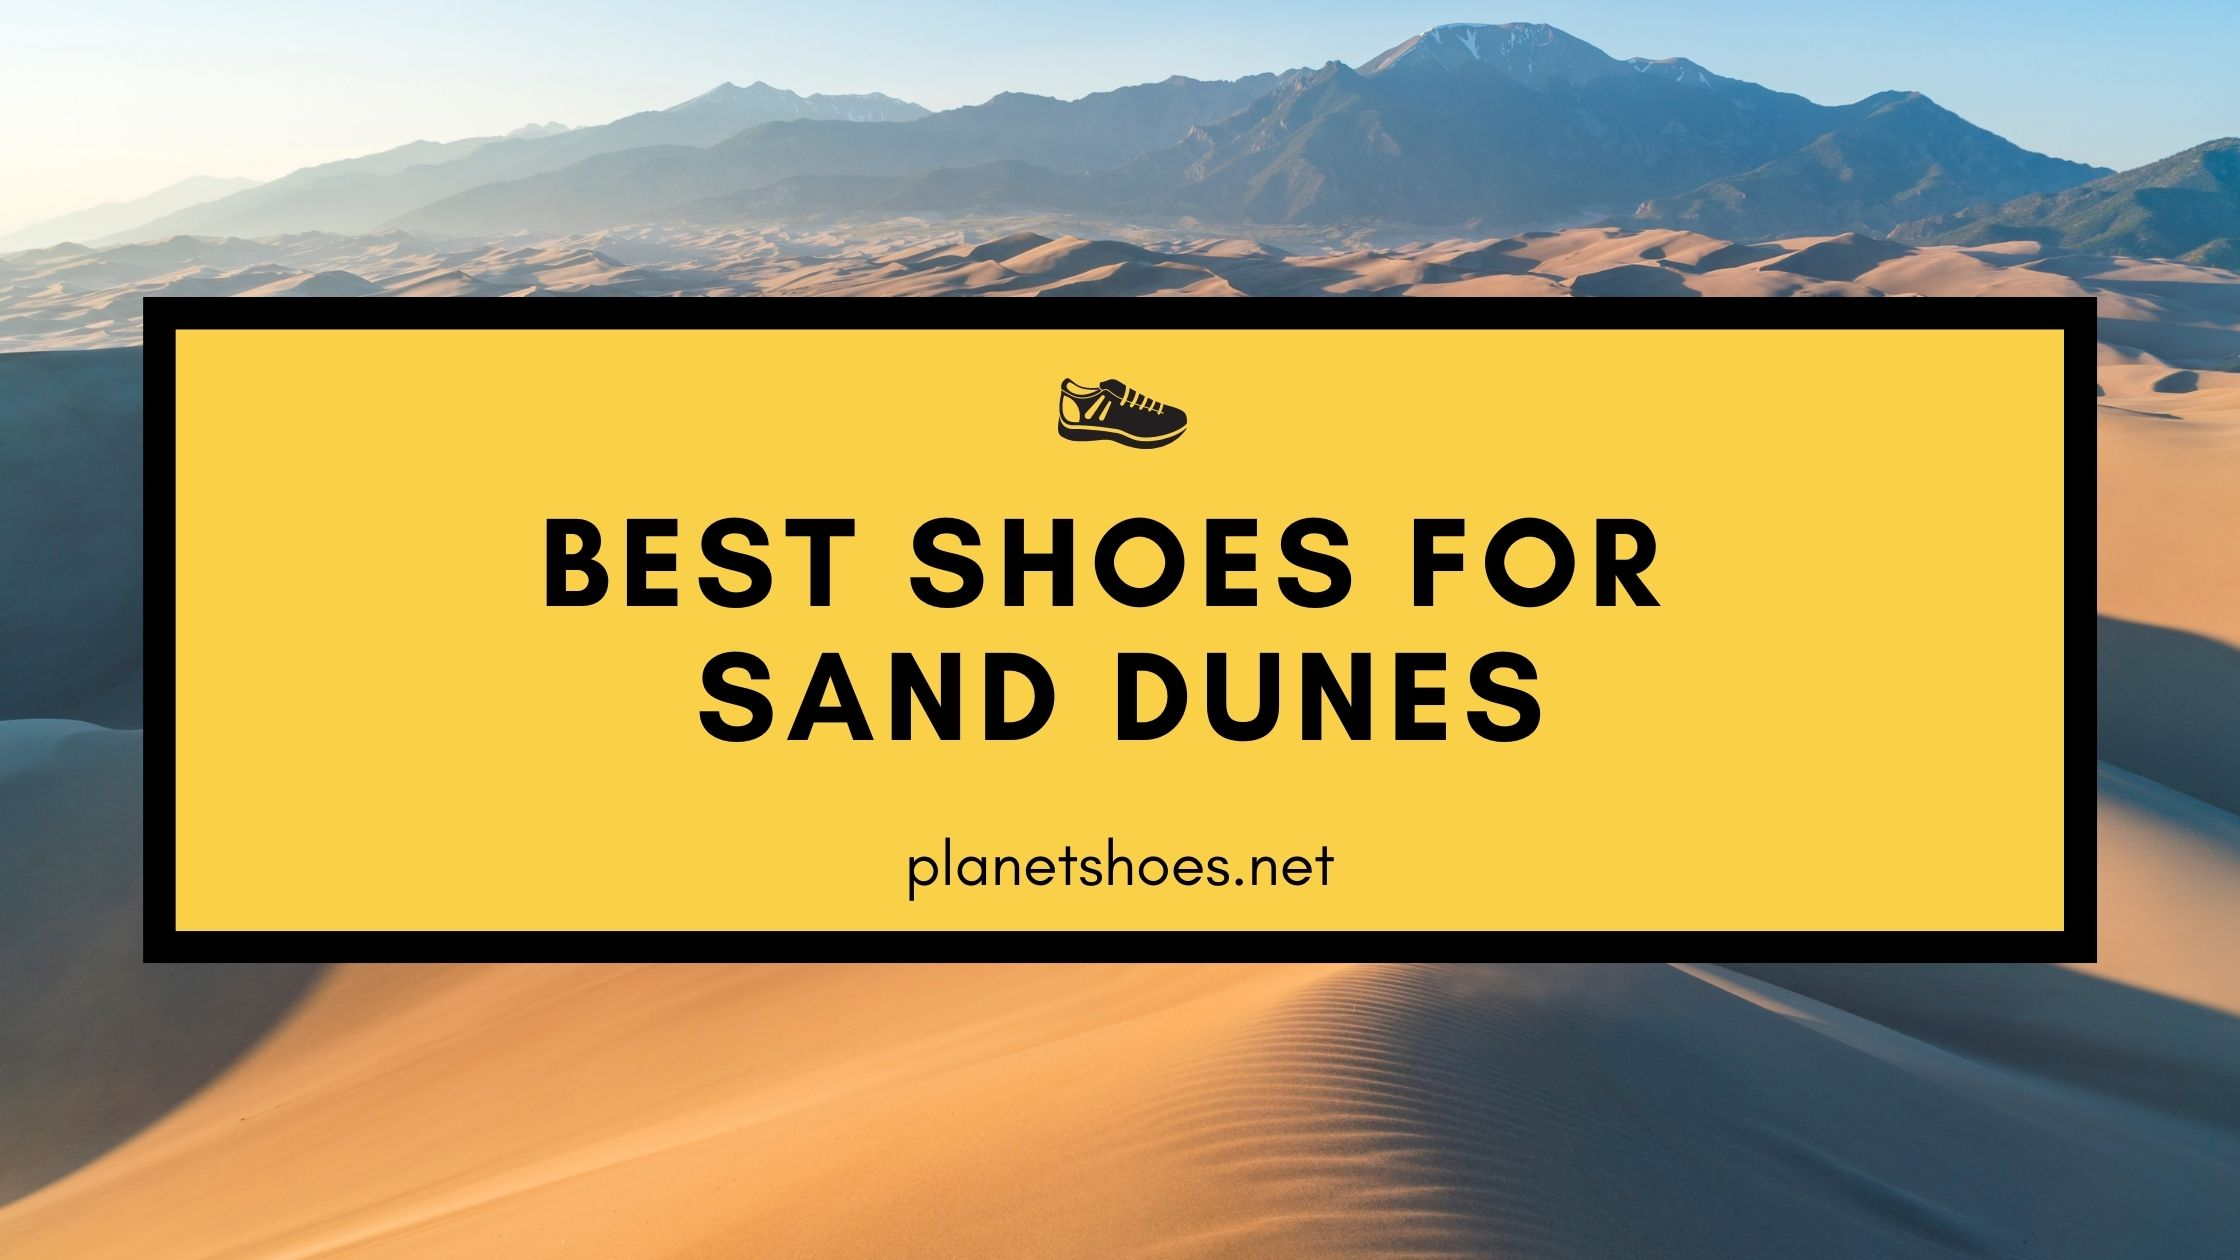 PS-Best-shoes-for-sand-dunes